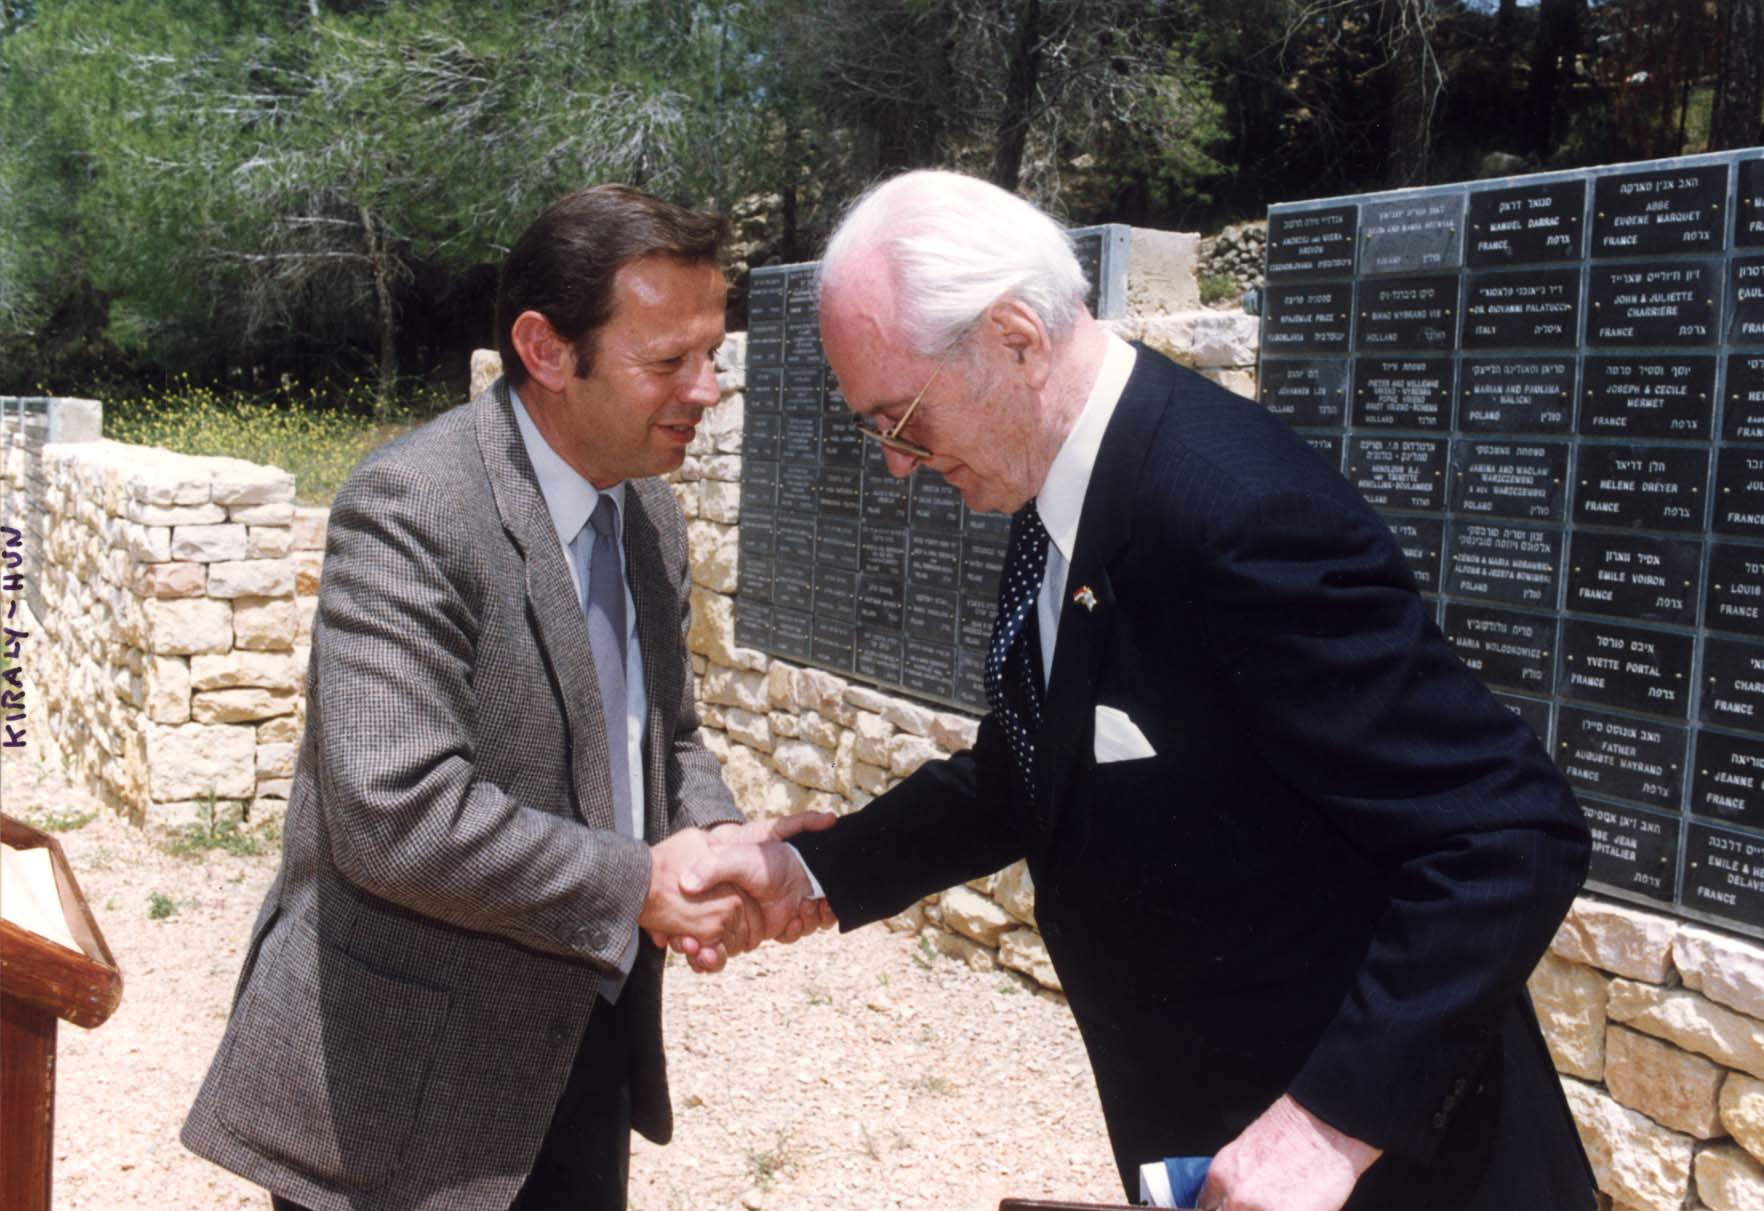 Ceremony in honor of Bela Kiraly. Yad Vashem, 10.05.1993